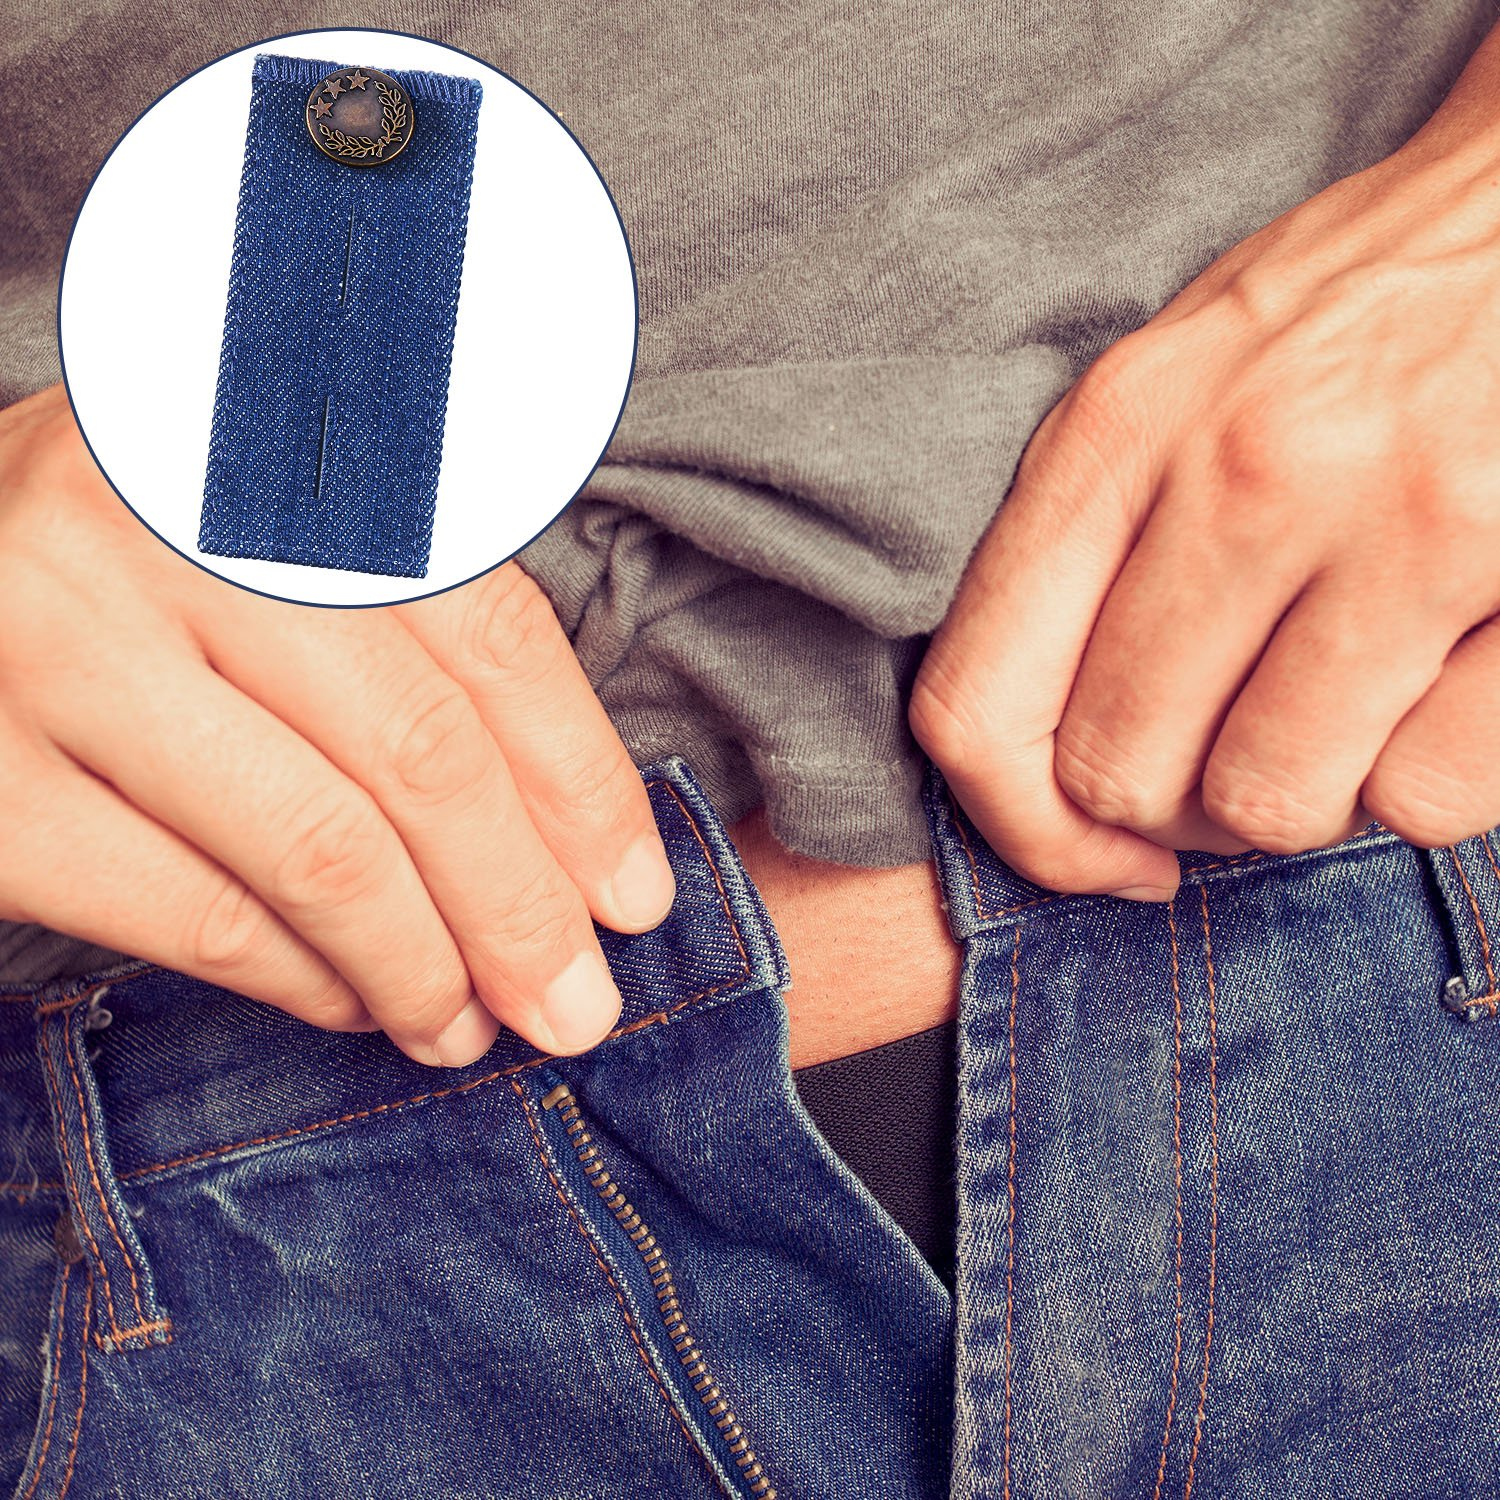 Jeans Black, Blue, Dark Blue and Light Blue Tatuo 8 Pieces Button Extender Waist Extender for Pants Trousers and Skirt